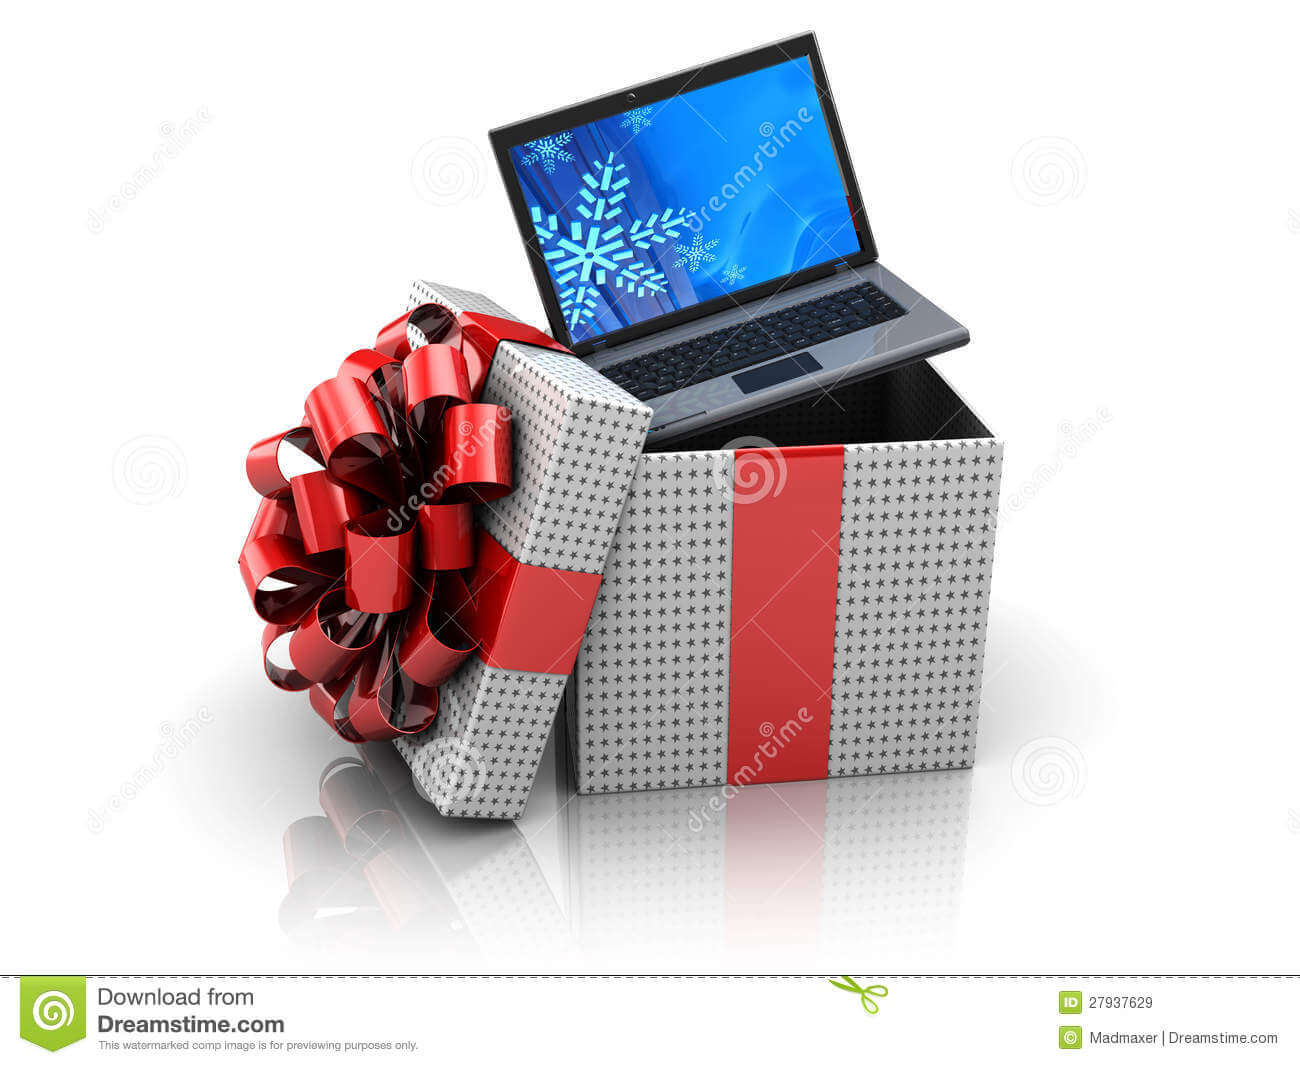 gift-box-laptop-27937629